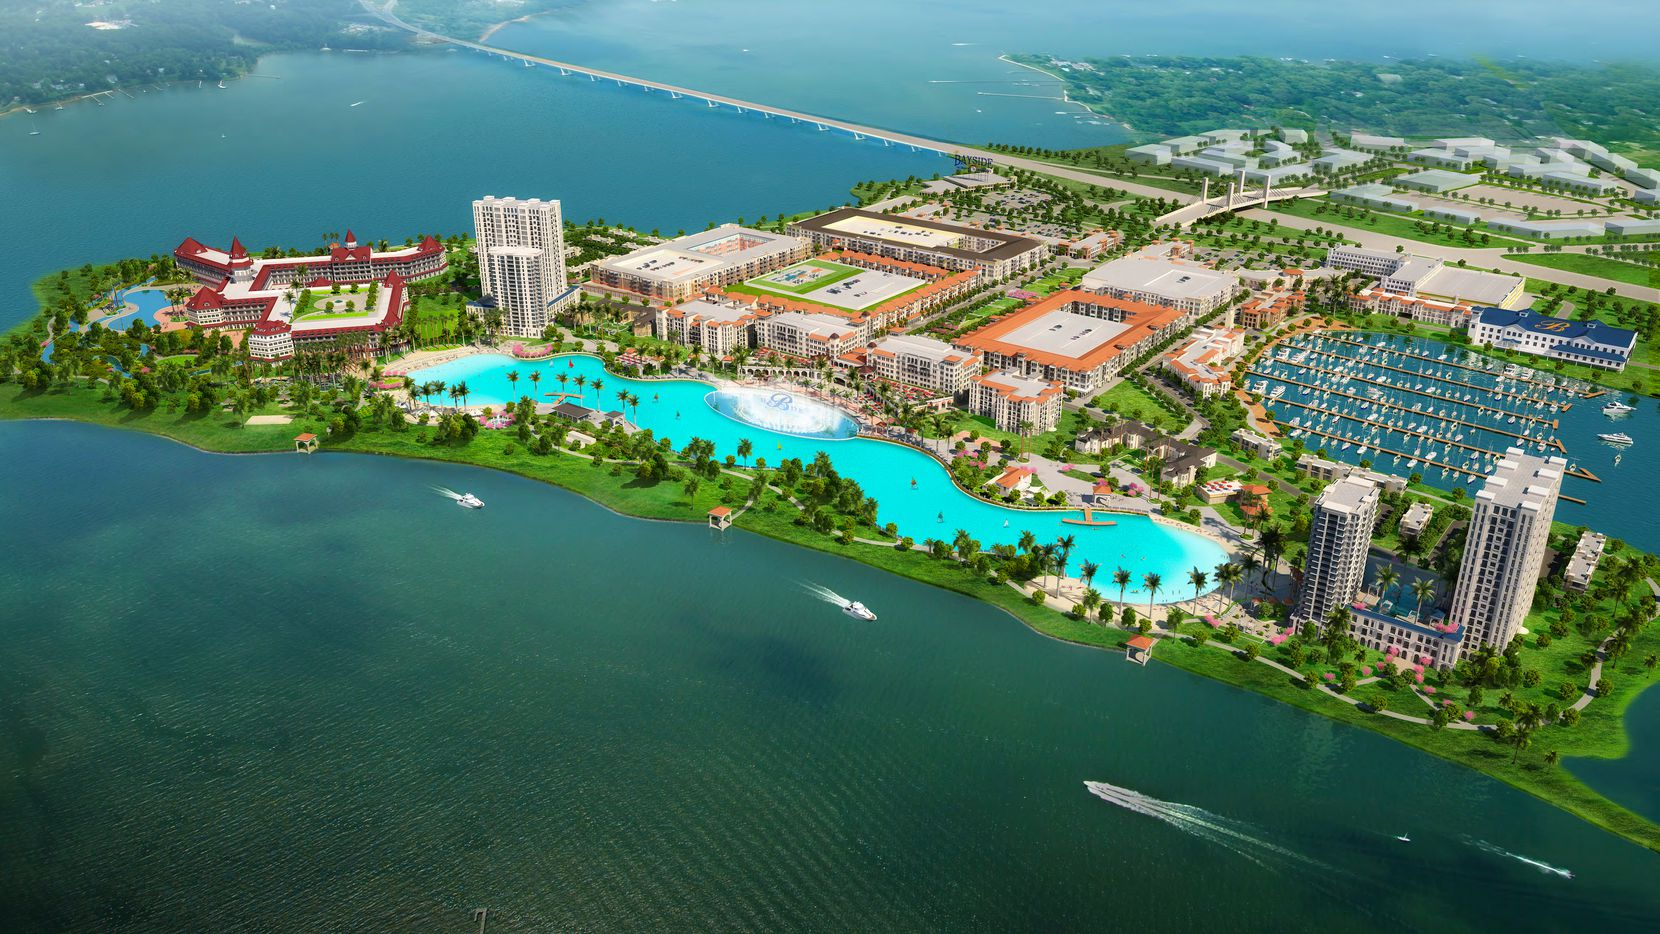 Rowlett's mixed-use Bayside community will have a waterfront home community.